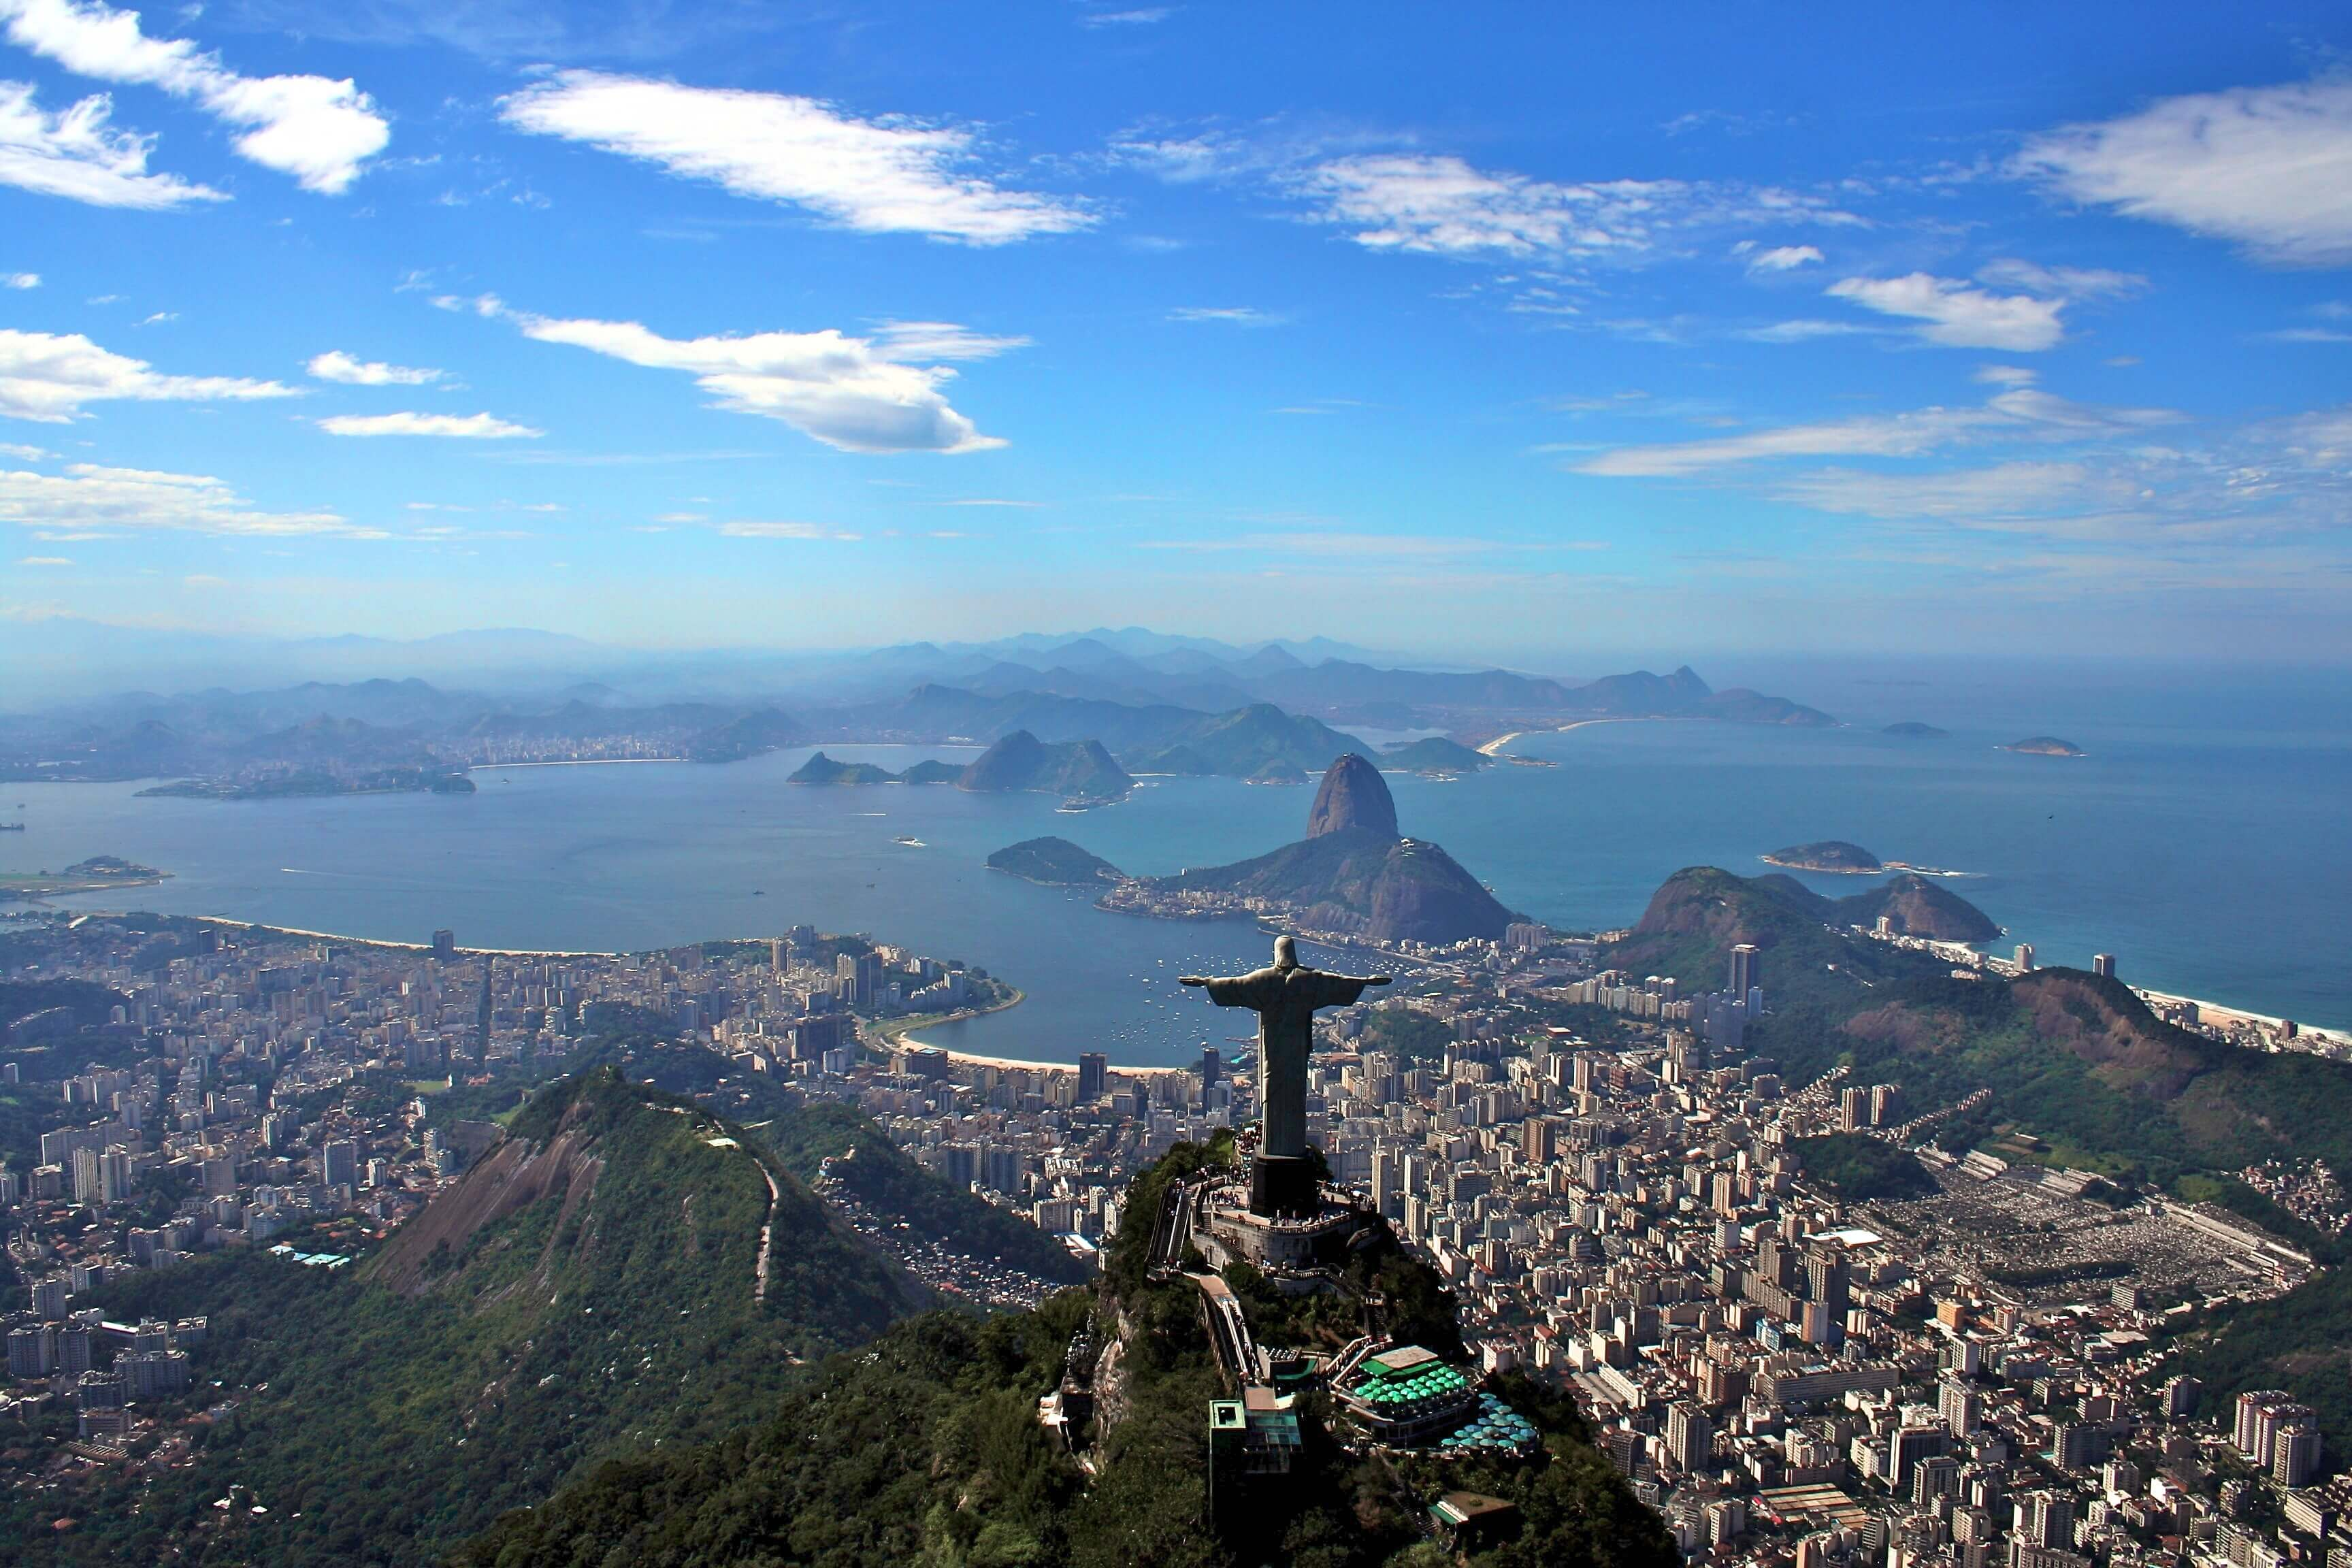 Incredible Brazil